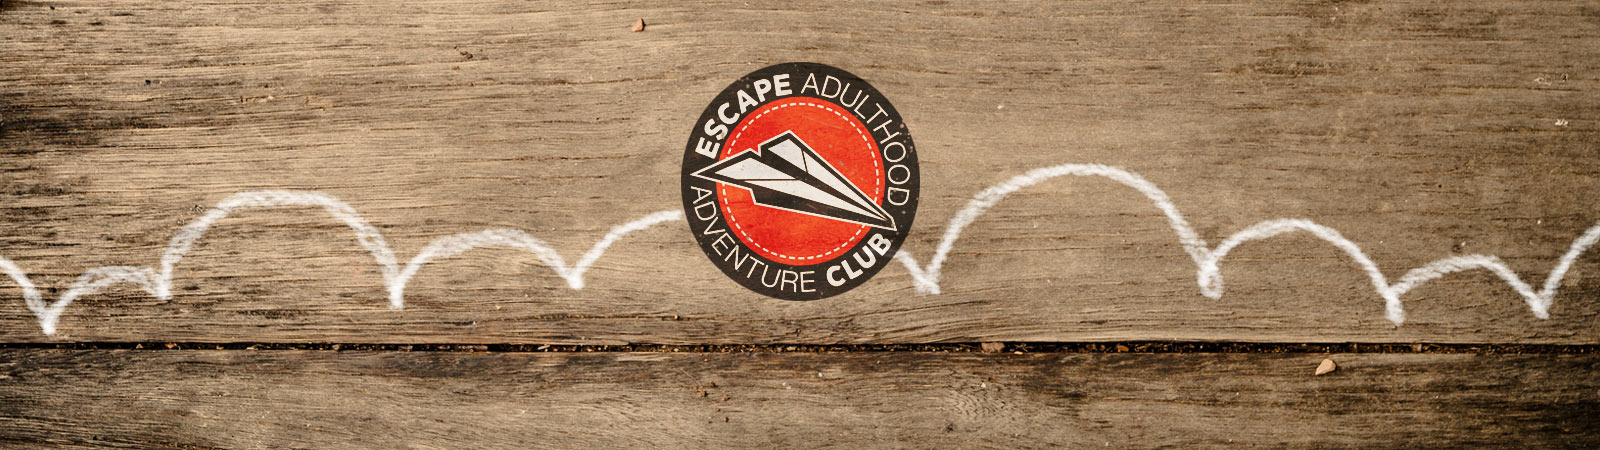 Escape Adulthood Adventure Club